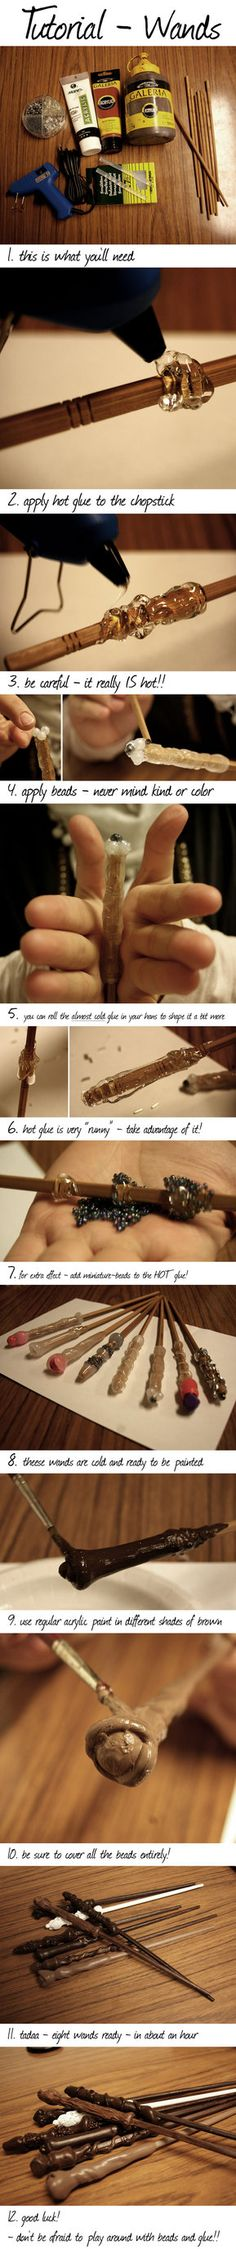 Wands - tutorial by *majann Not my style, but very useful craft info.